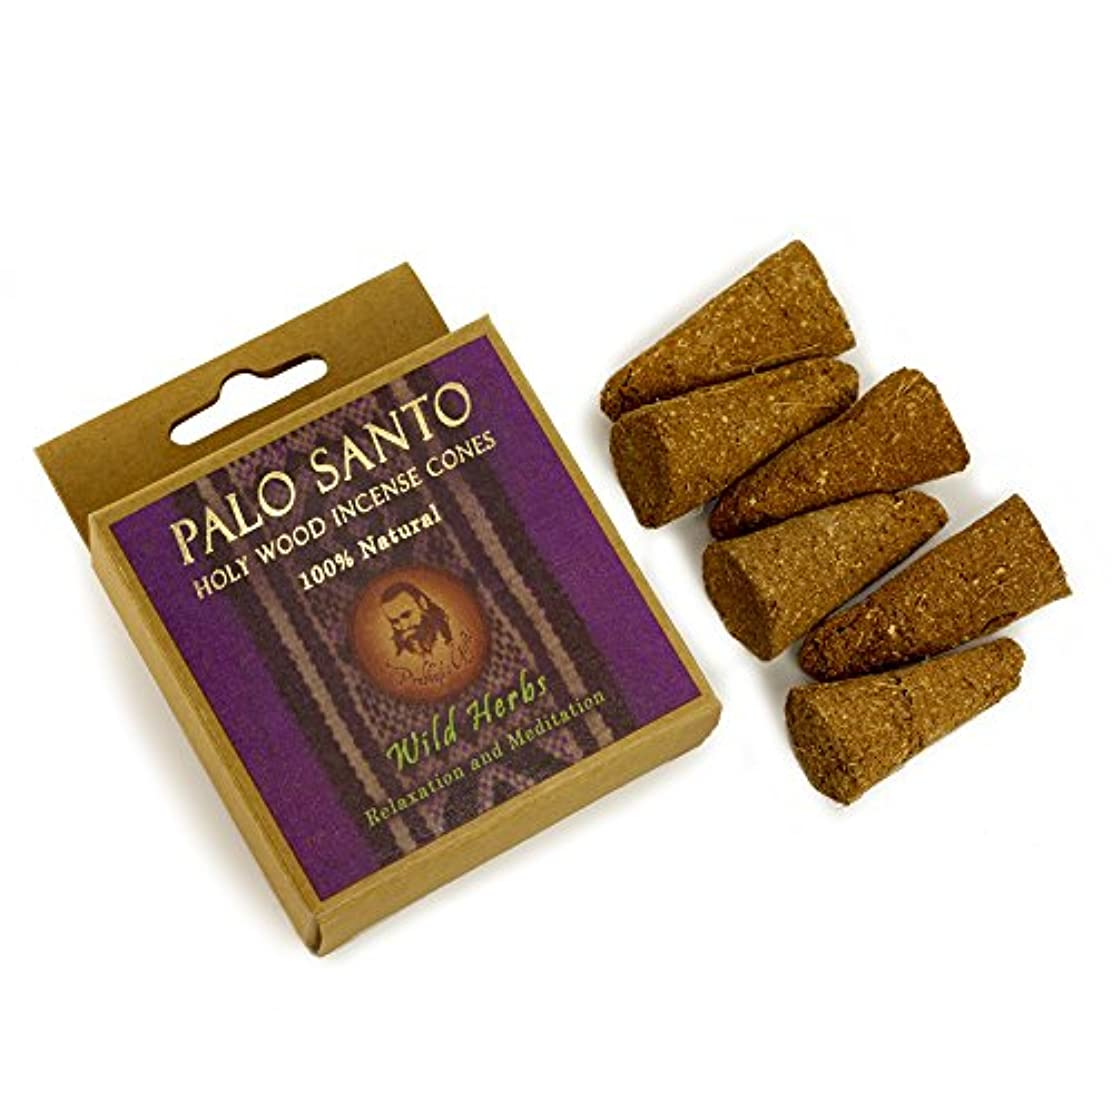 陸軍寄託こどもセンターPalo Santo and Wild herbs – Relaxation &瞑想 – 6 Incense Cones